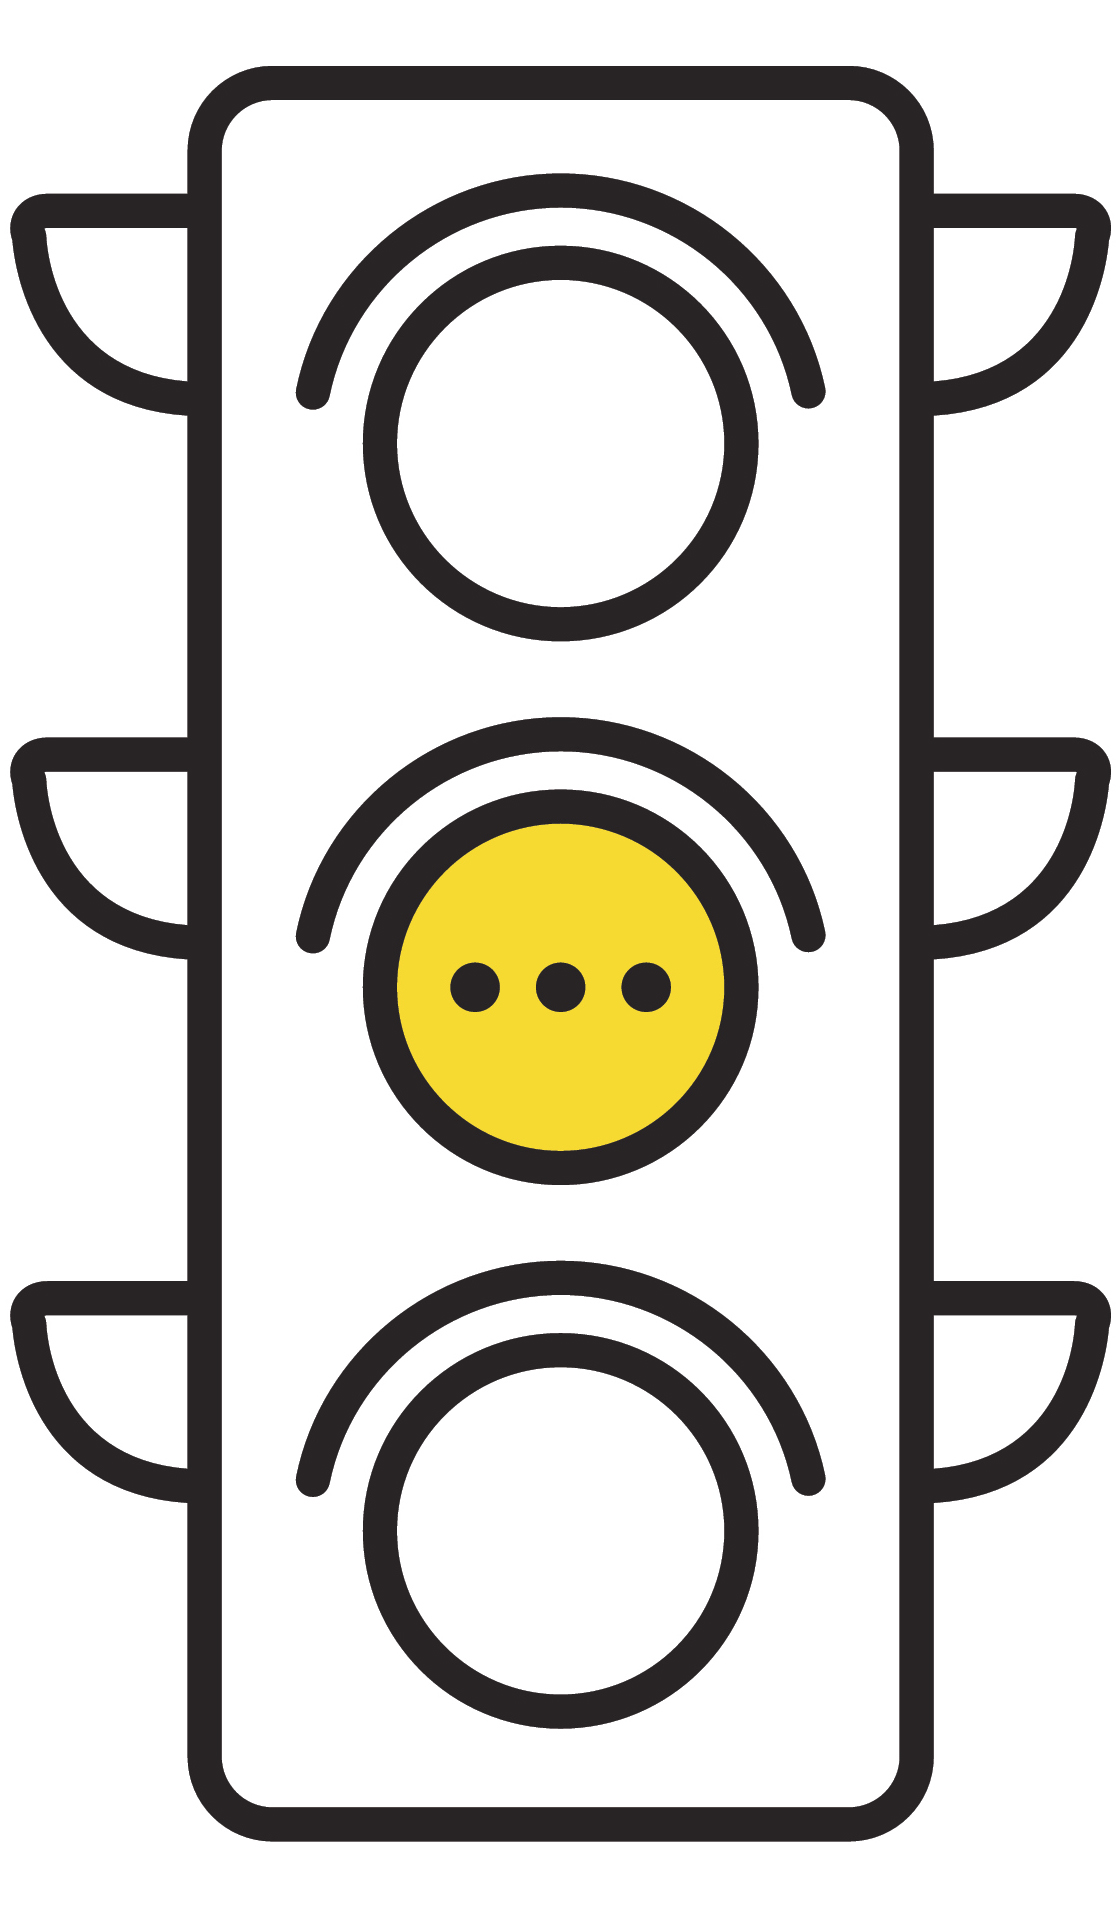 Traffic light interface icons. Red, yellow and green (yes, no and standby). Thin line vector buttons.